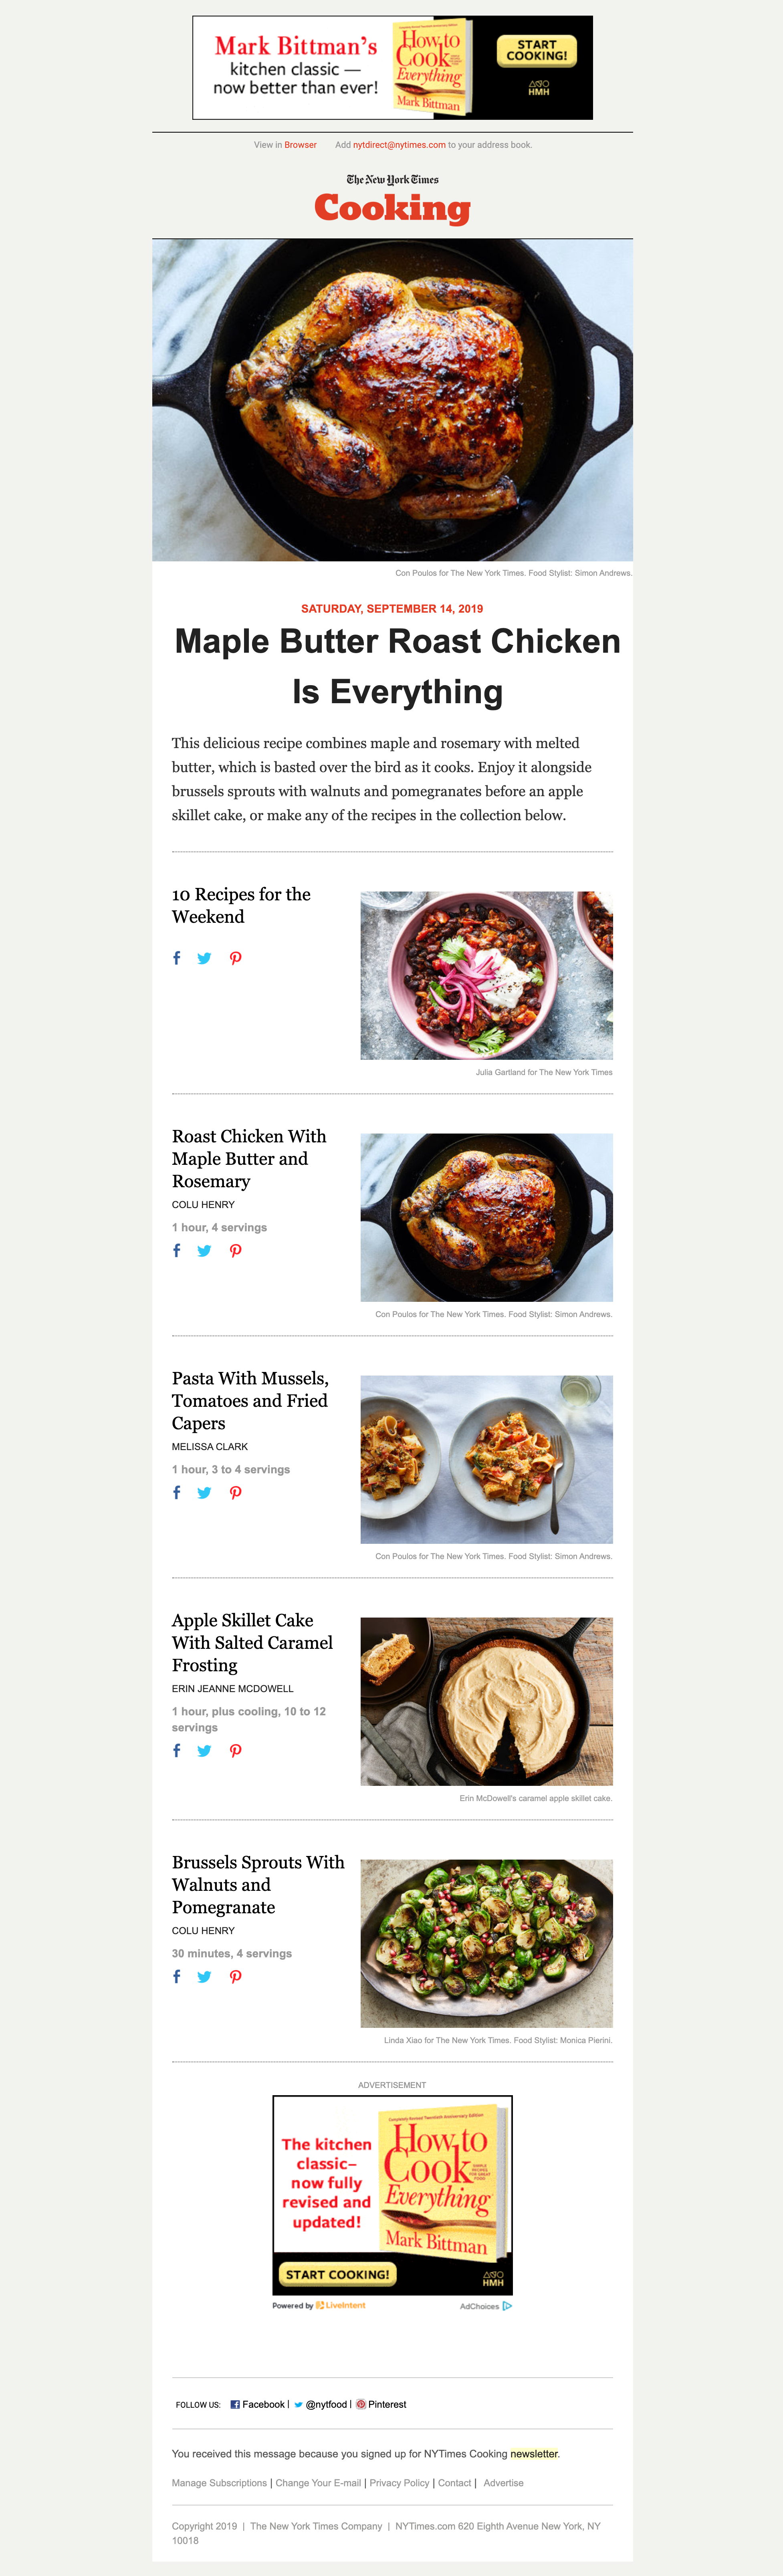 The New York Times Cooking's email